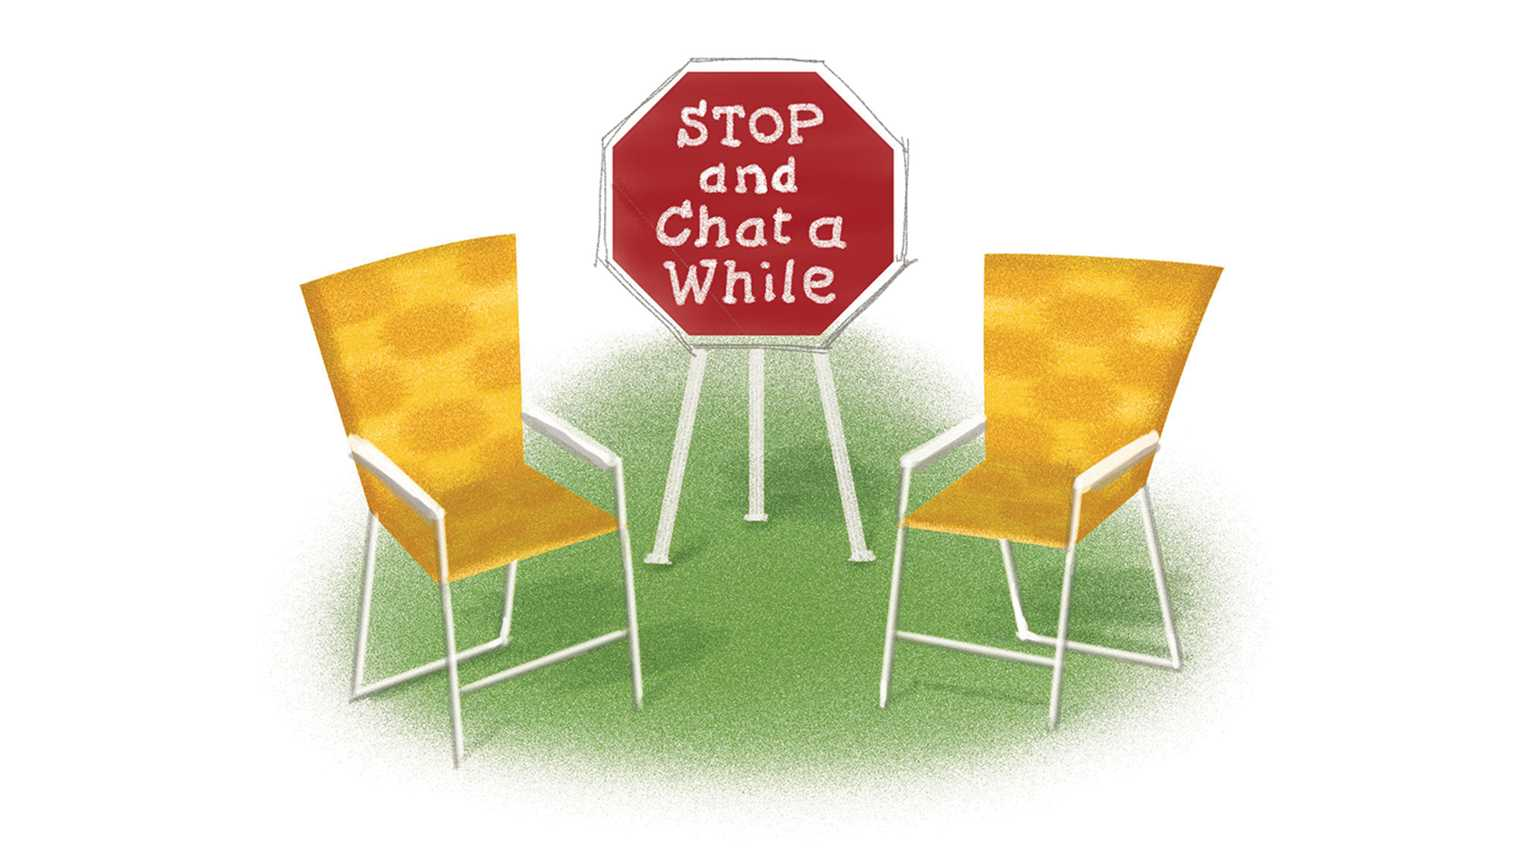 An artist's rendering of two lawn chairs with a sign between them urging folks to stop and chat